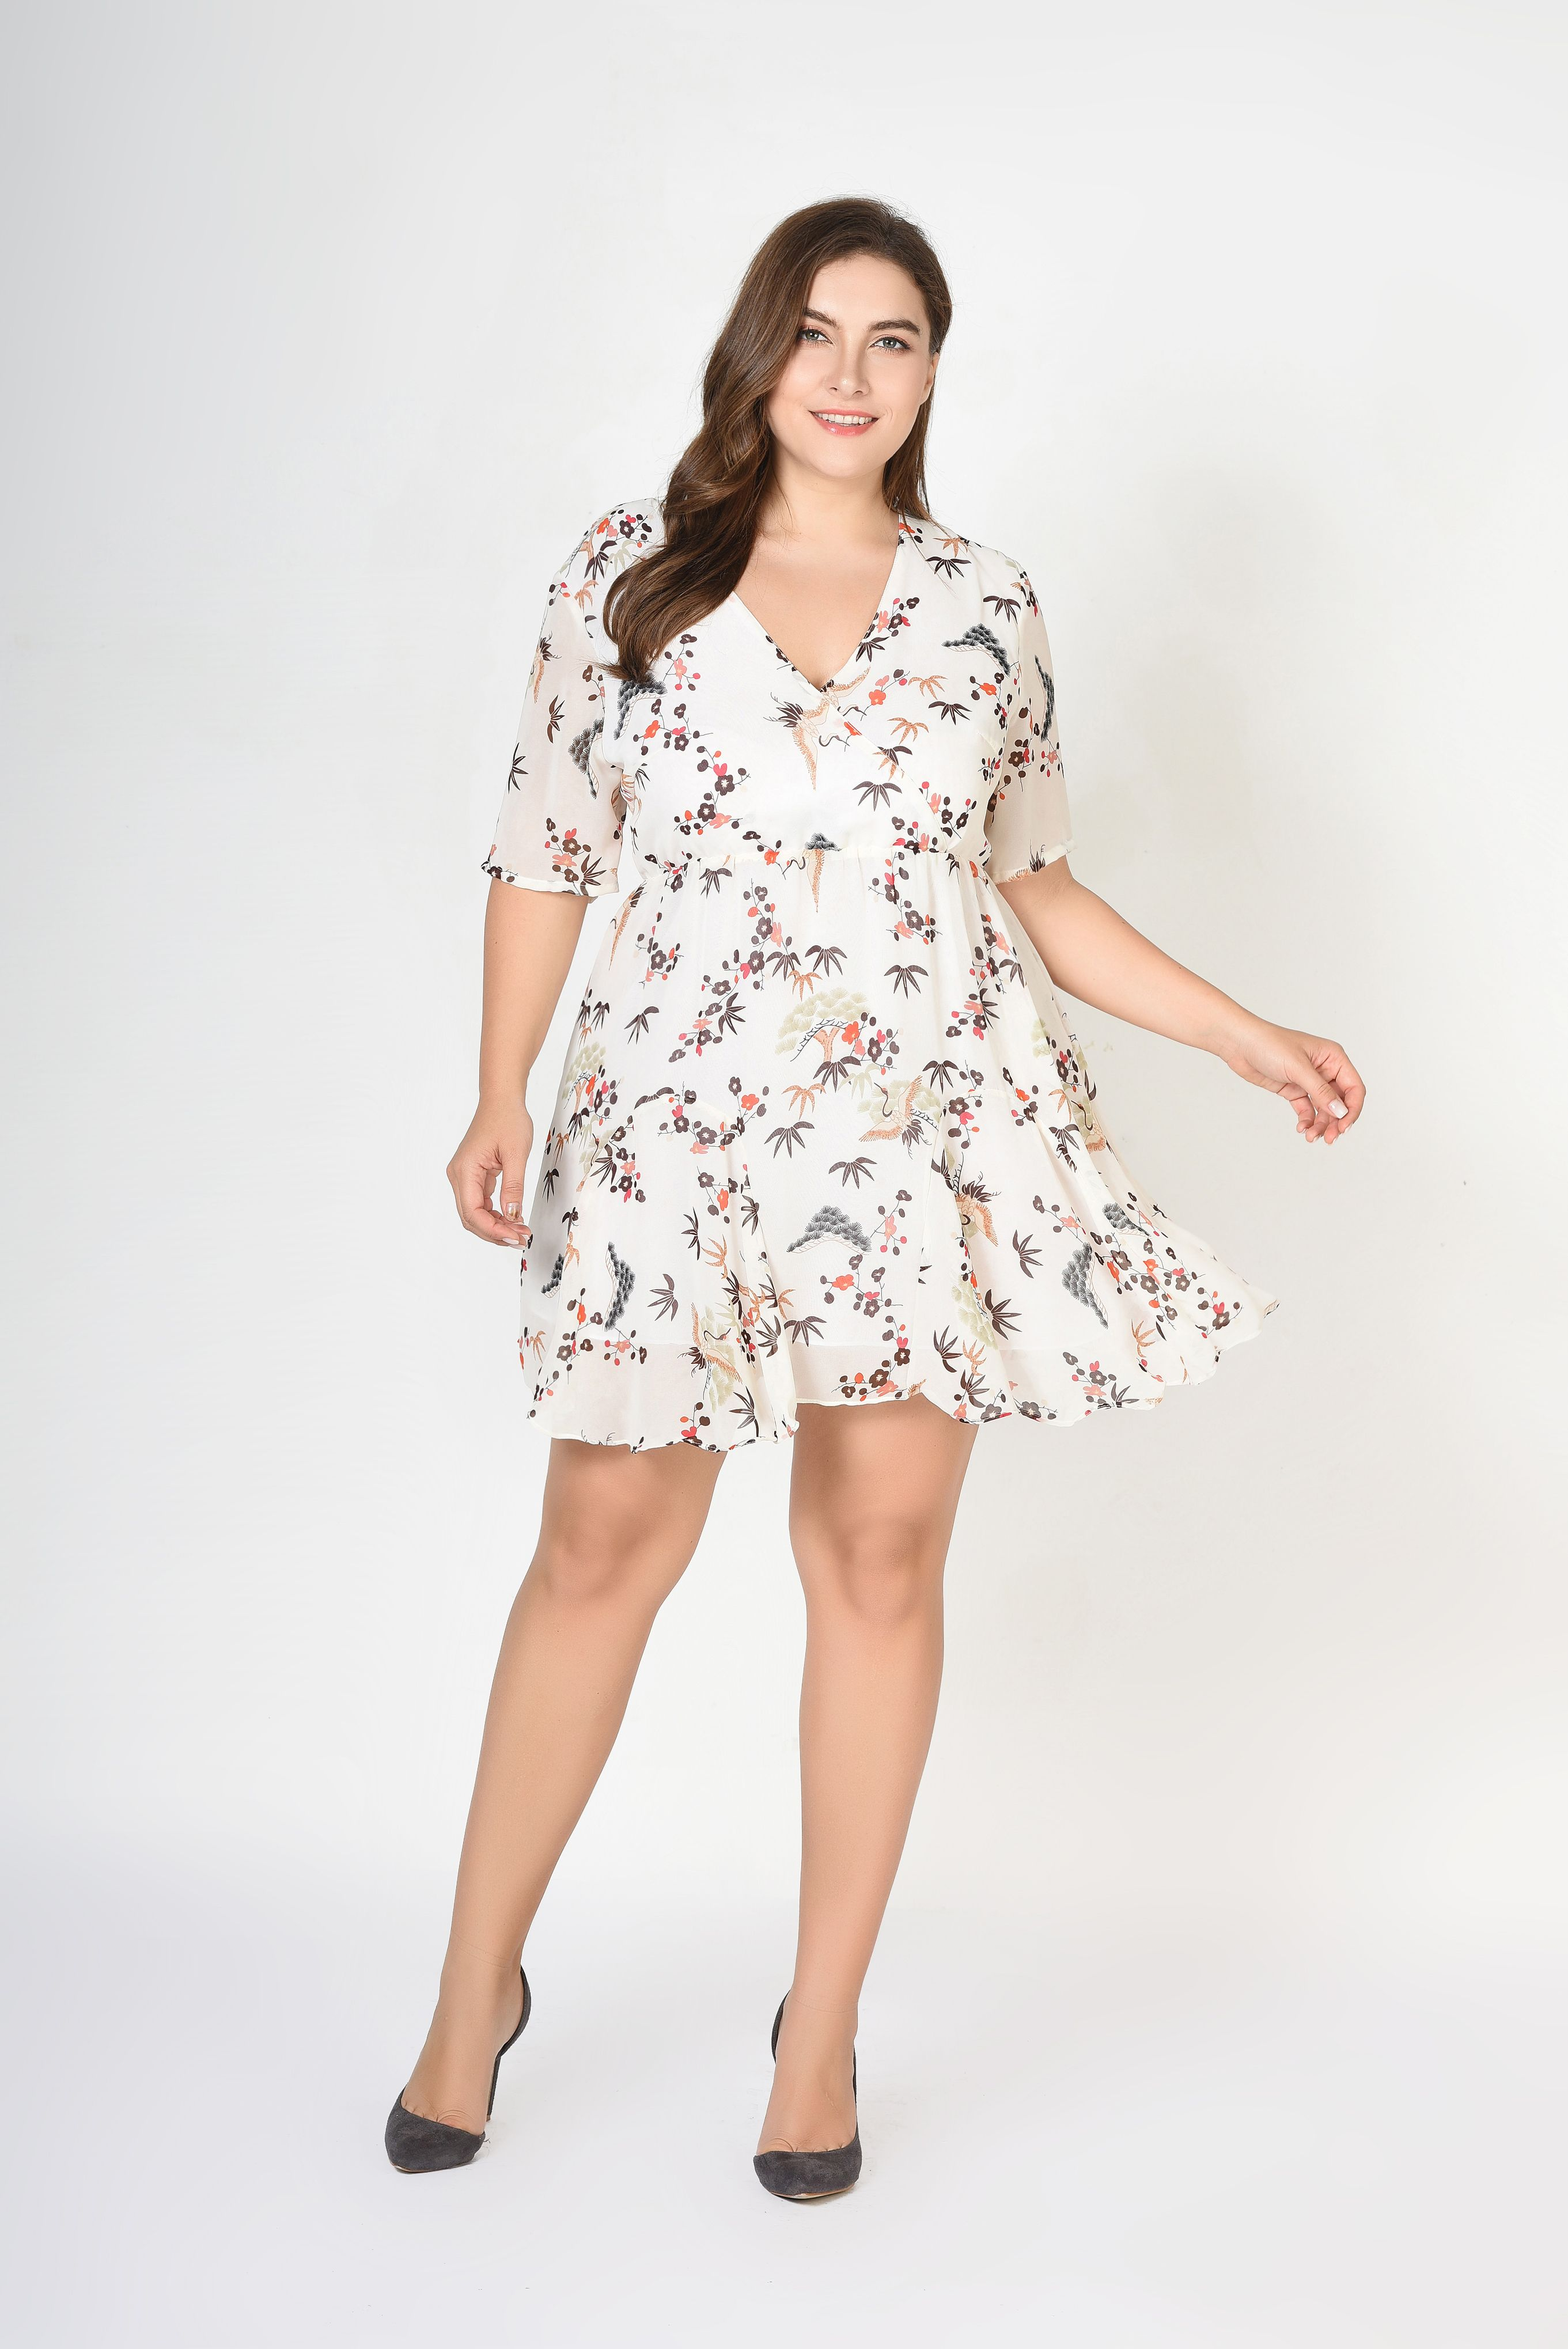 High Quality Plus Size 37xl Floral Dresses. 49 off. only